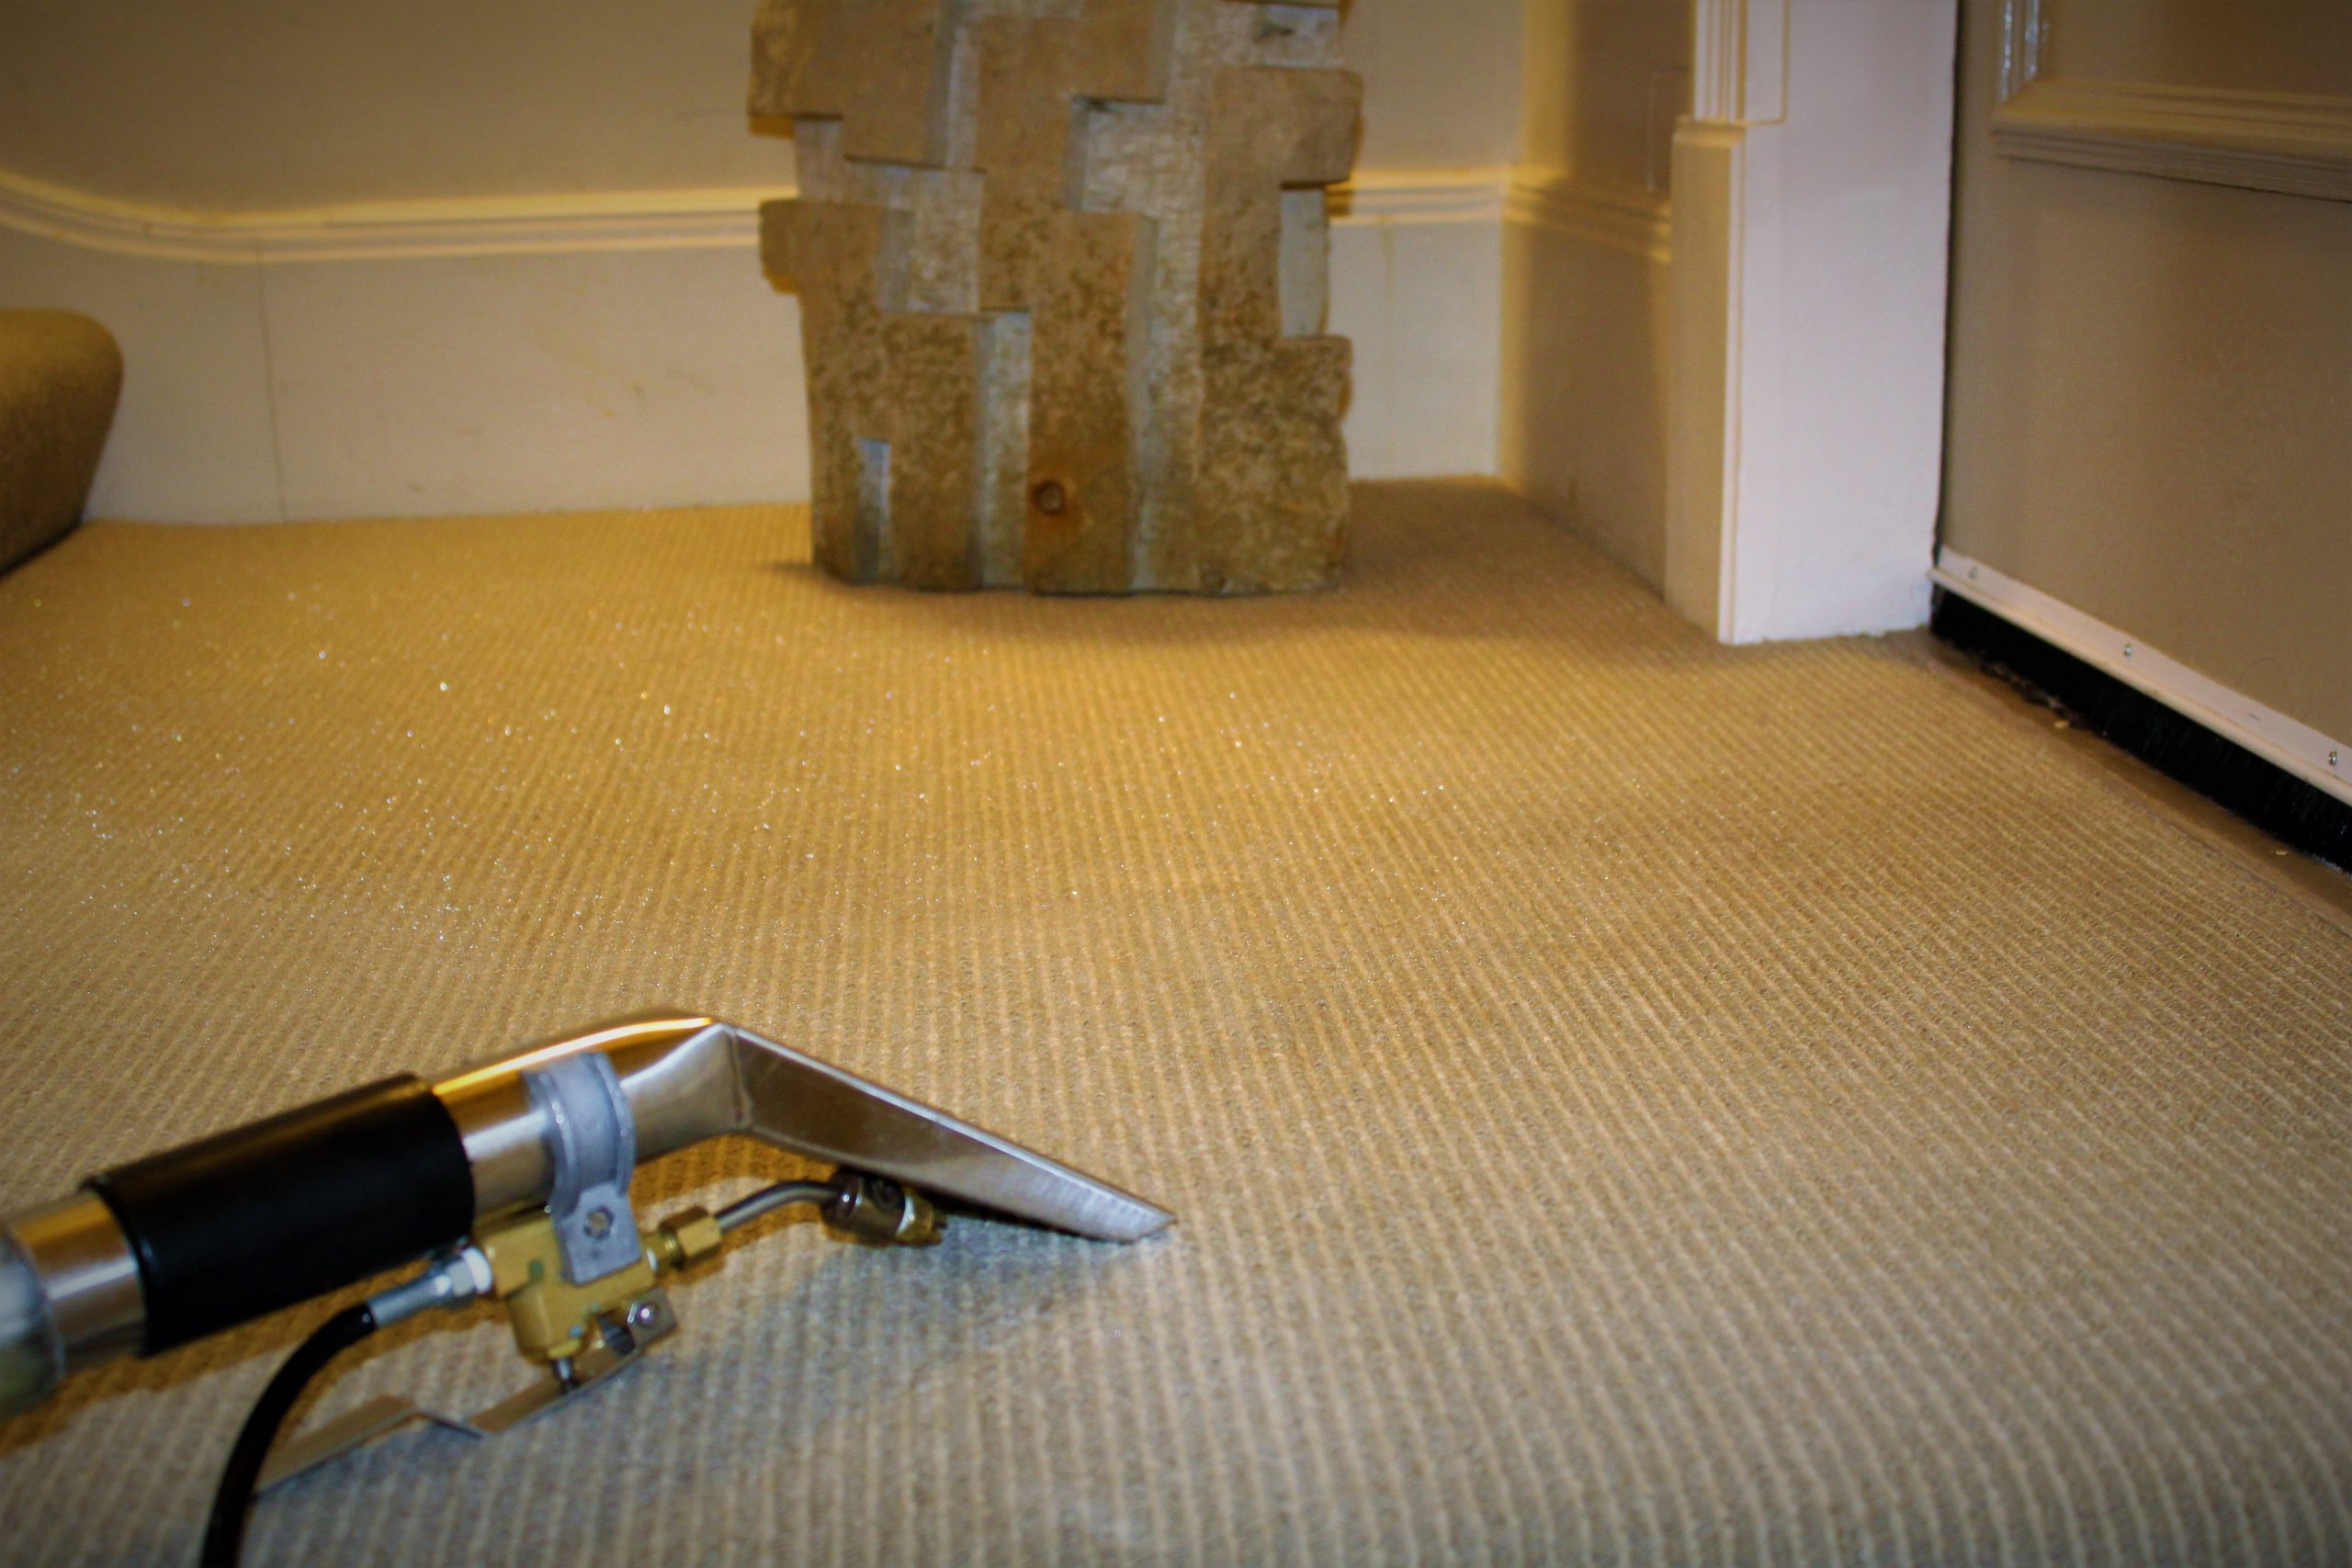 carpet-cleaning-services-london